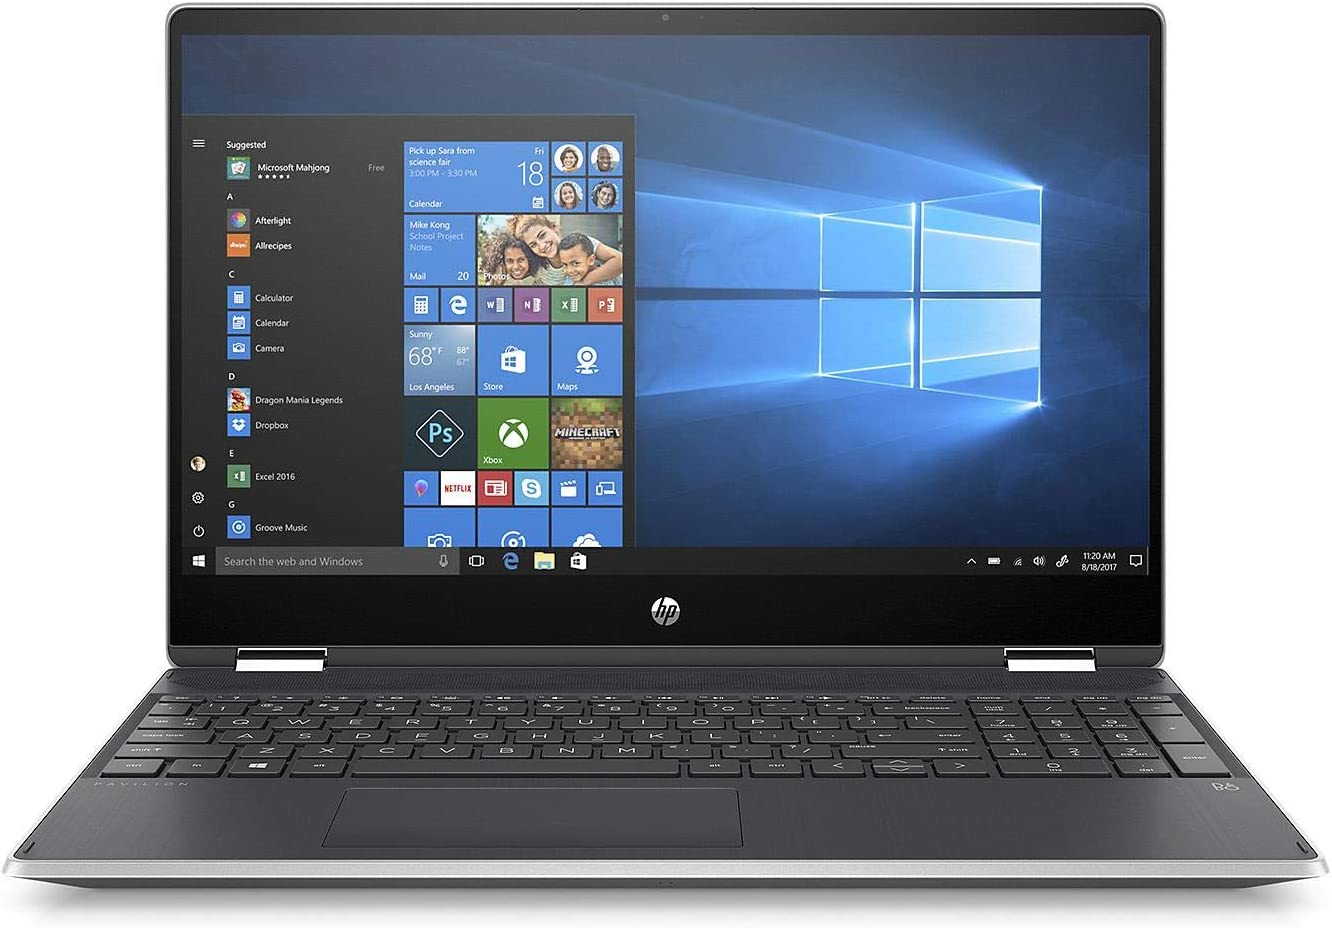 "HP Pavilion X360 15.6"" HD Convertible Touch Laptop, Intel Core i5-8265U Processor, 20GB Memory: 16GB Intel Optane + 4GB RAM, 1TB Hard Drive, 2 Year Warranty Care Pack with Accidental Damage Protection"